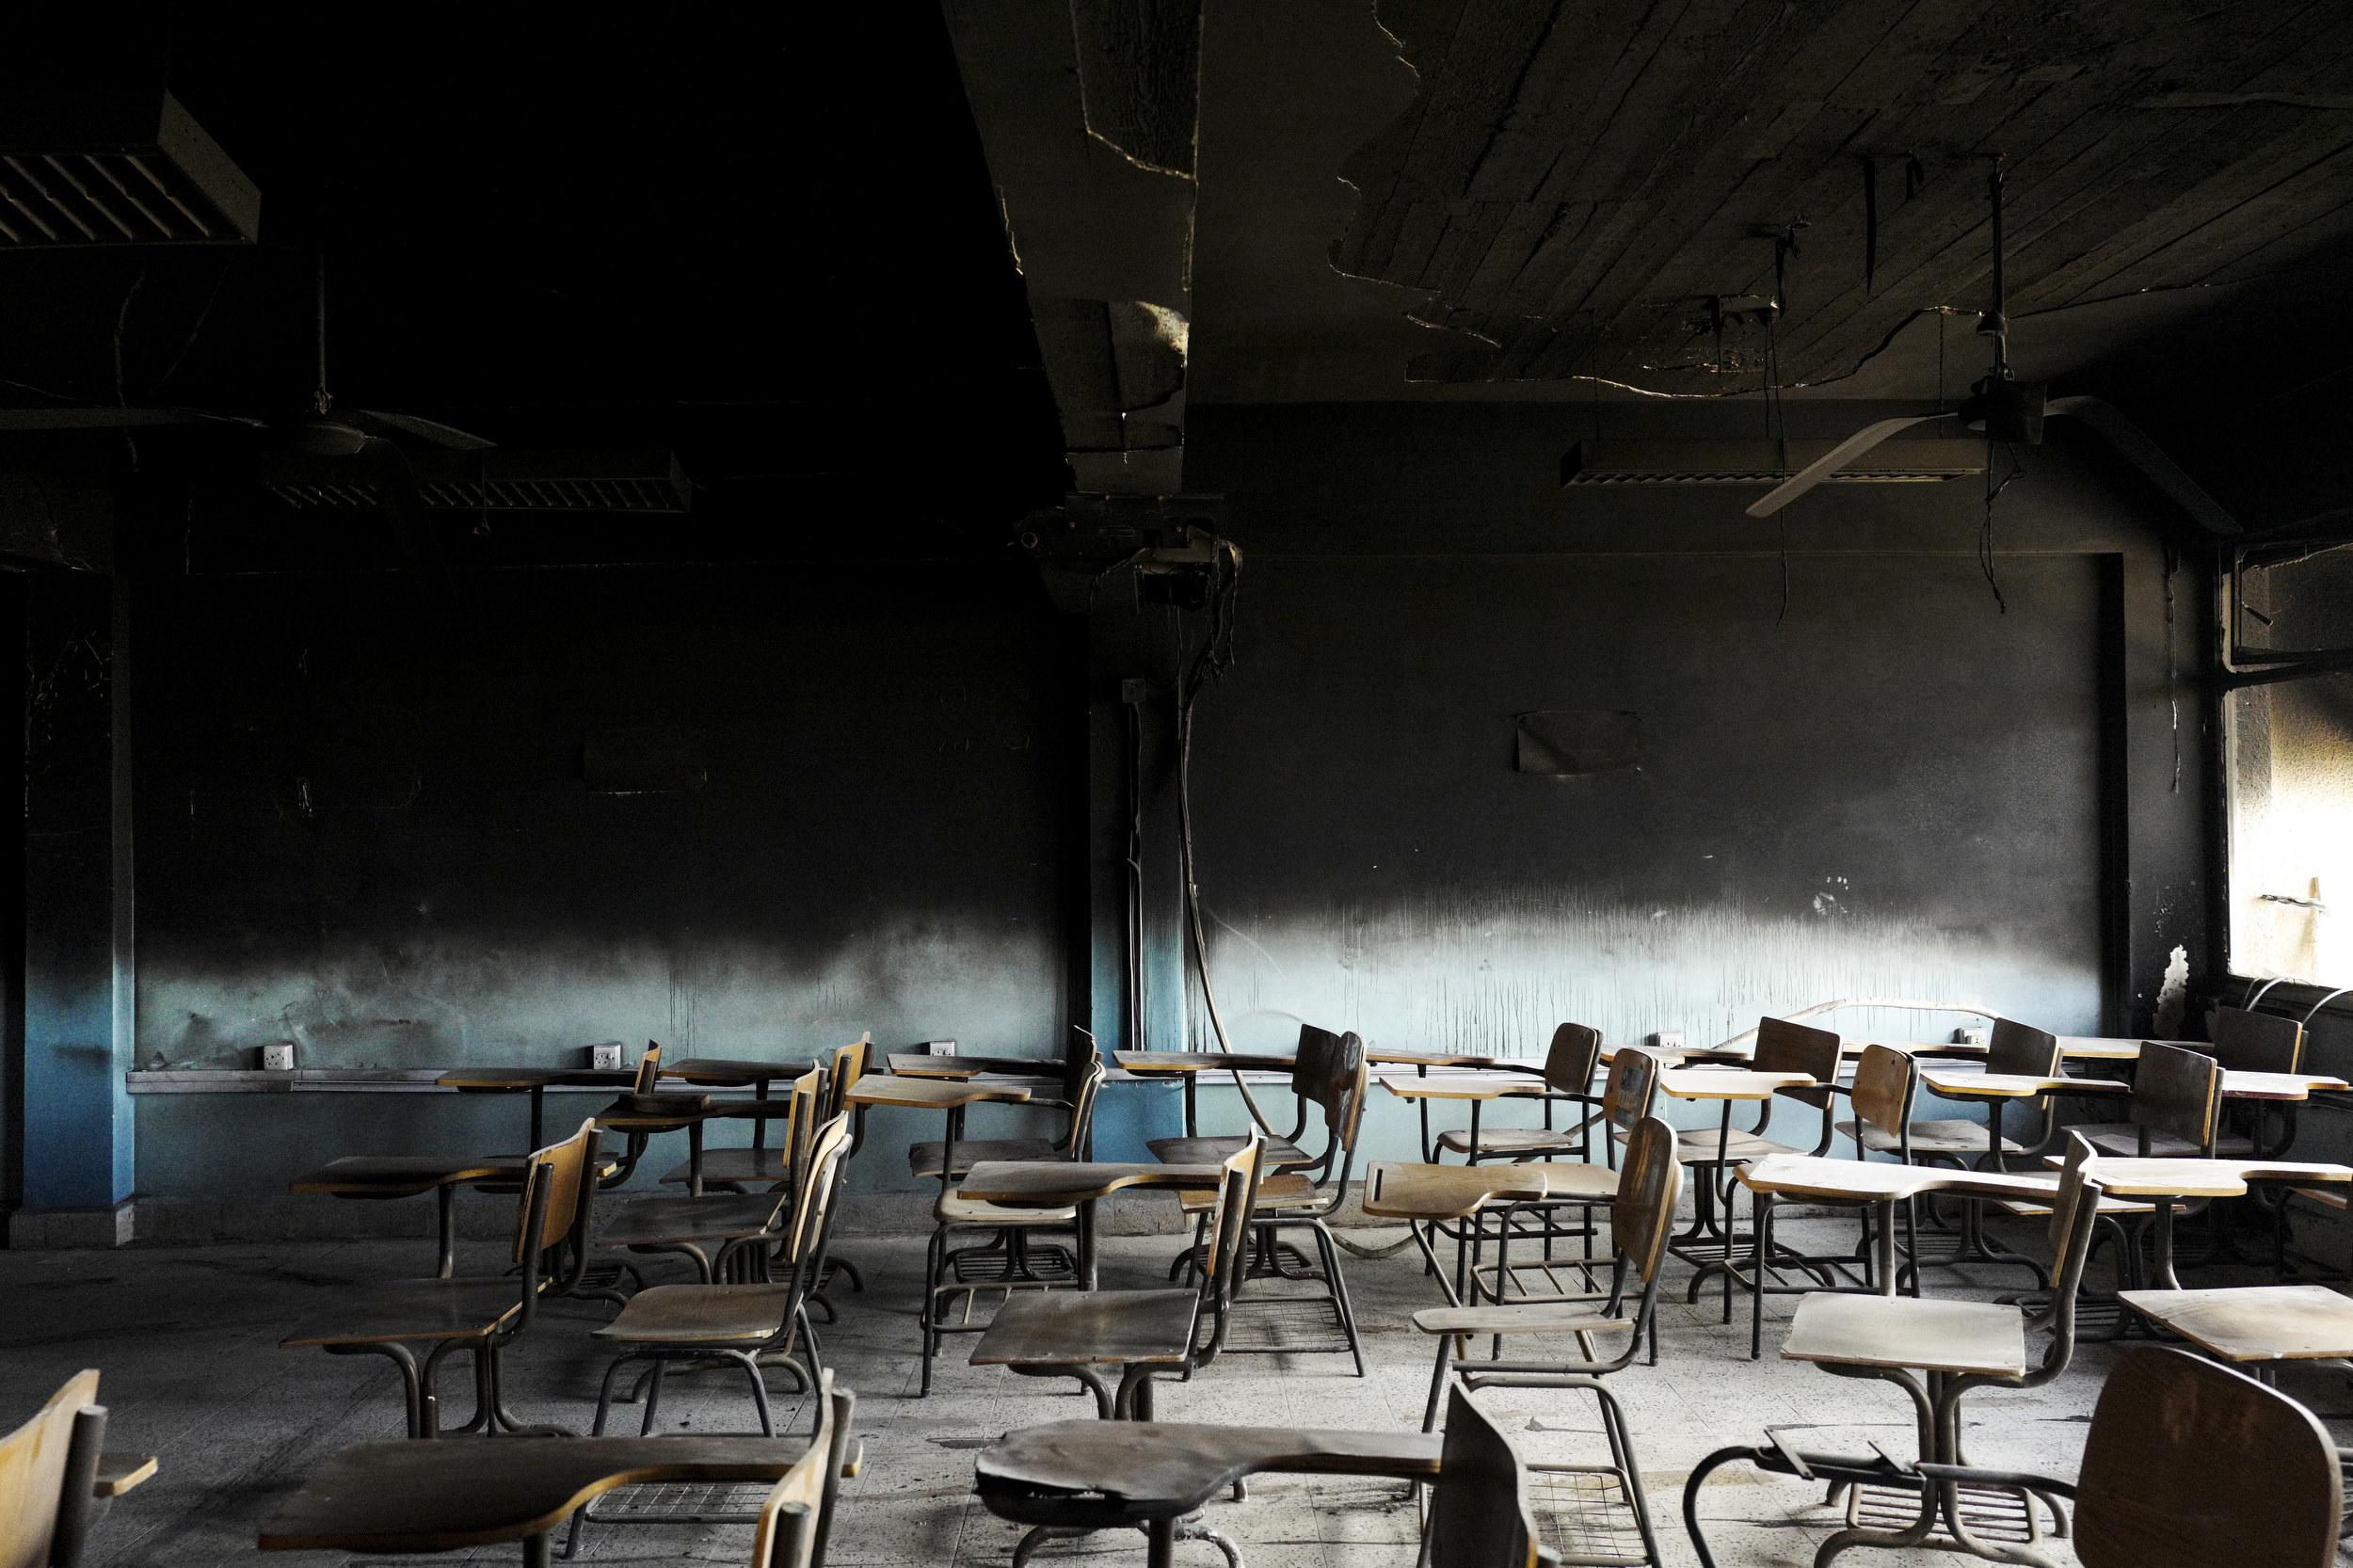 An empty school room with desks out of order and charred walls